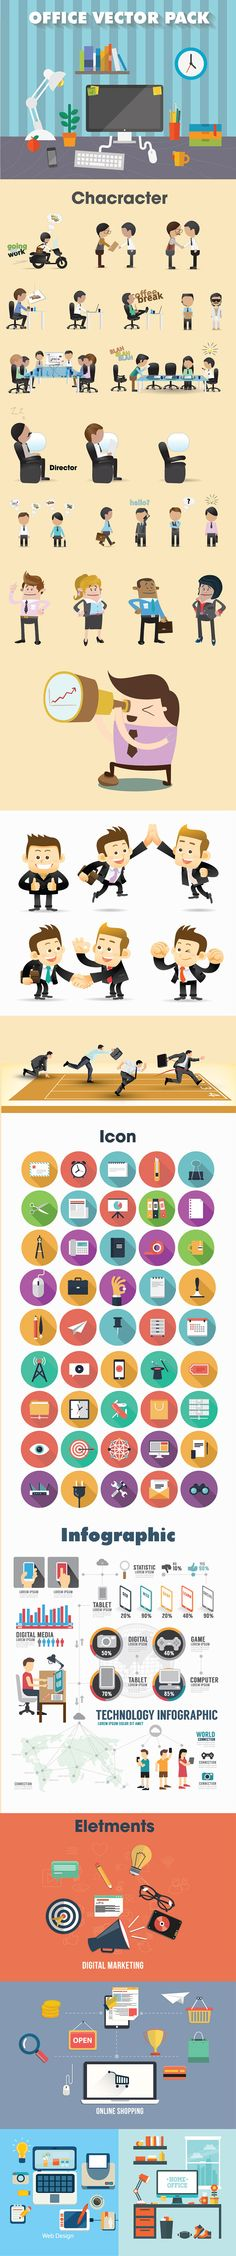 Office Vector Pack on Behance